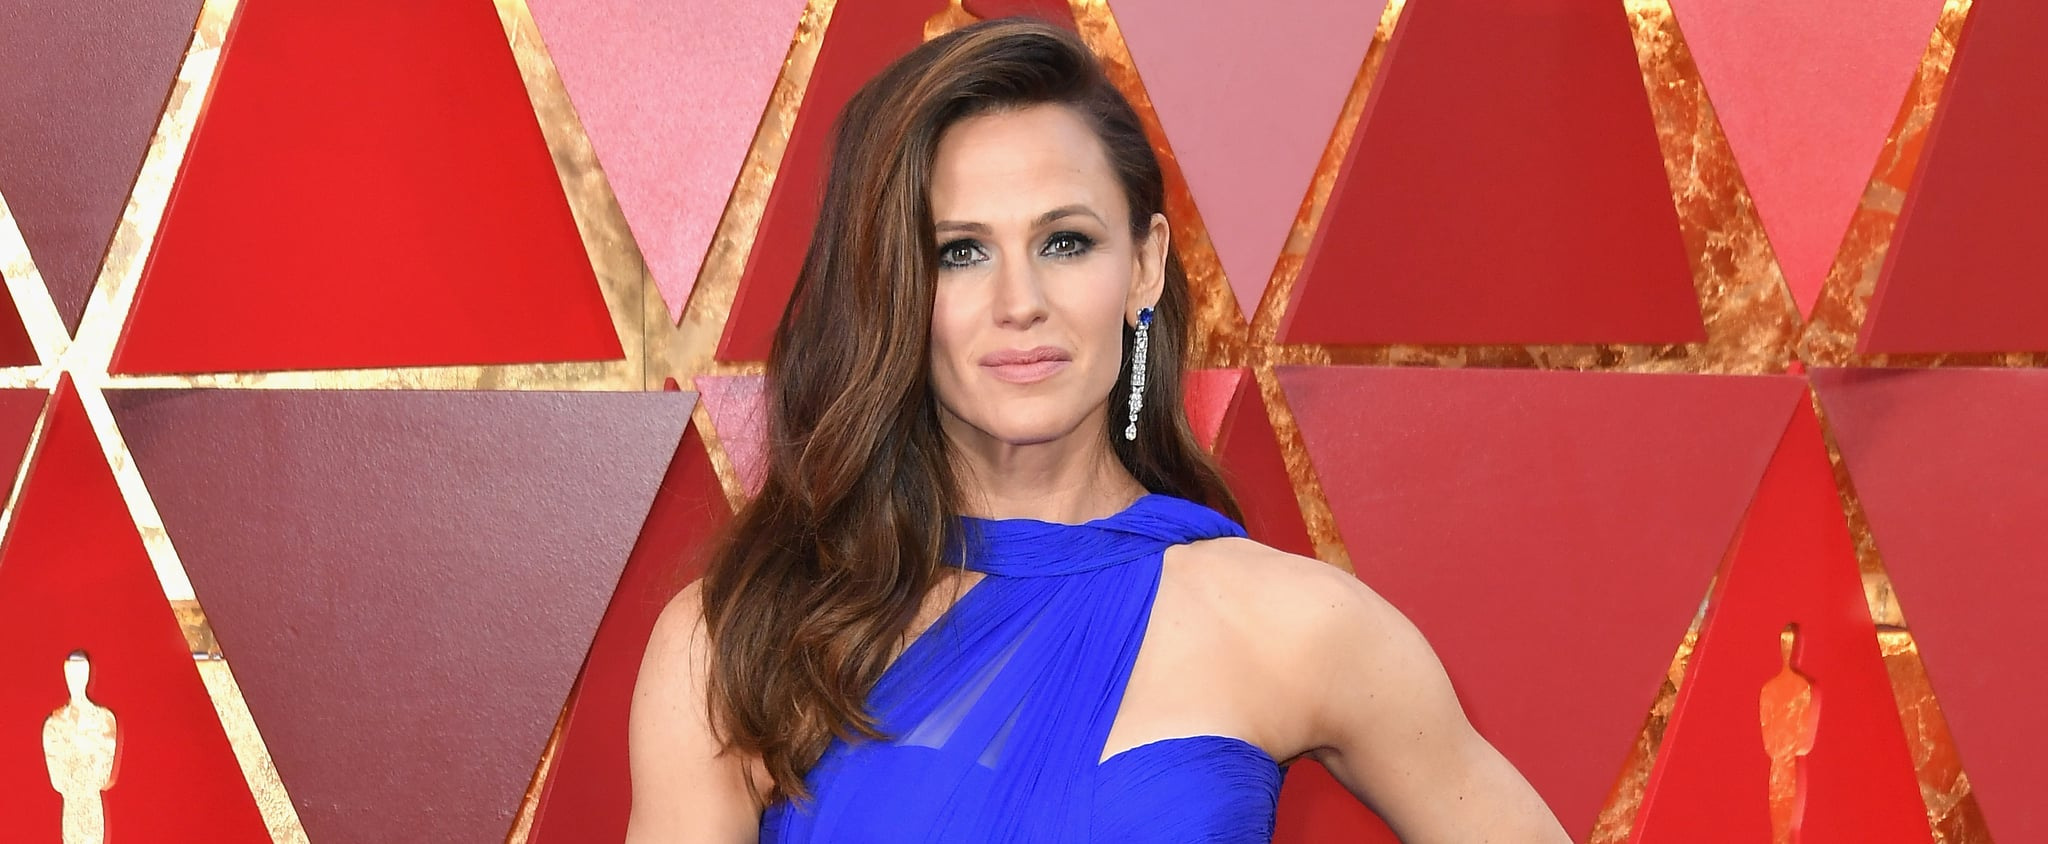 Jennifer Garner People's Most Beautiful Woman 2019